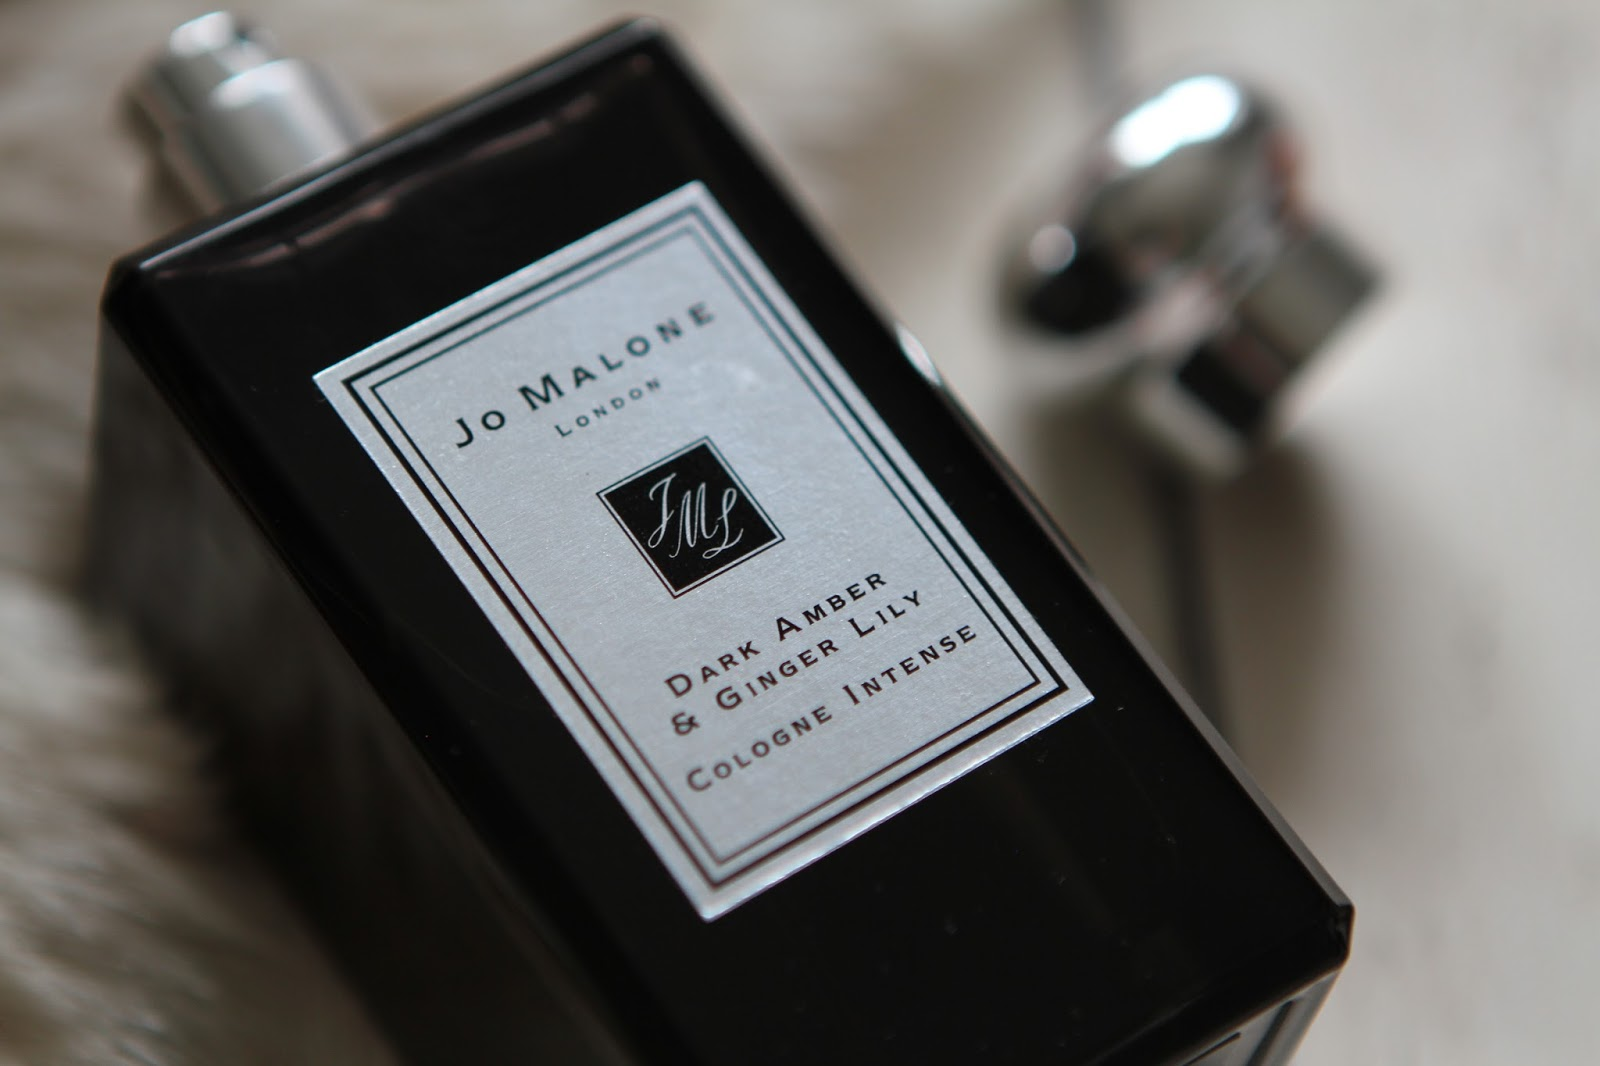 Jo Malone Dark amber and gingerlily